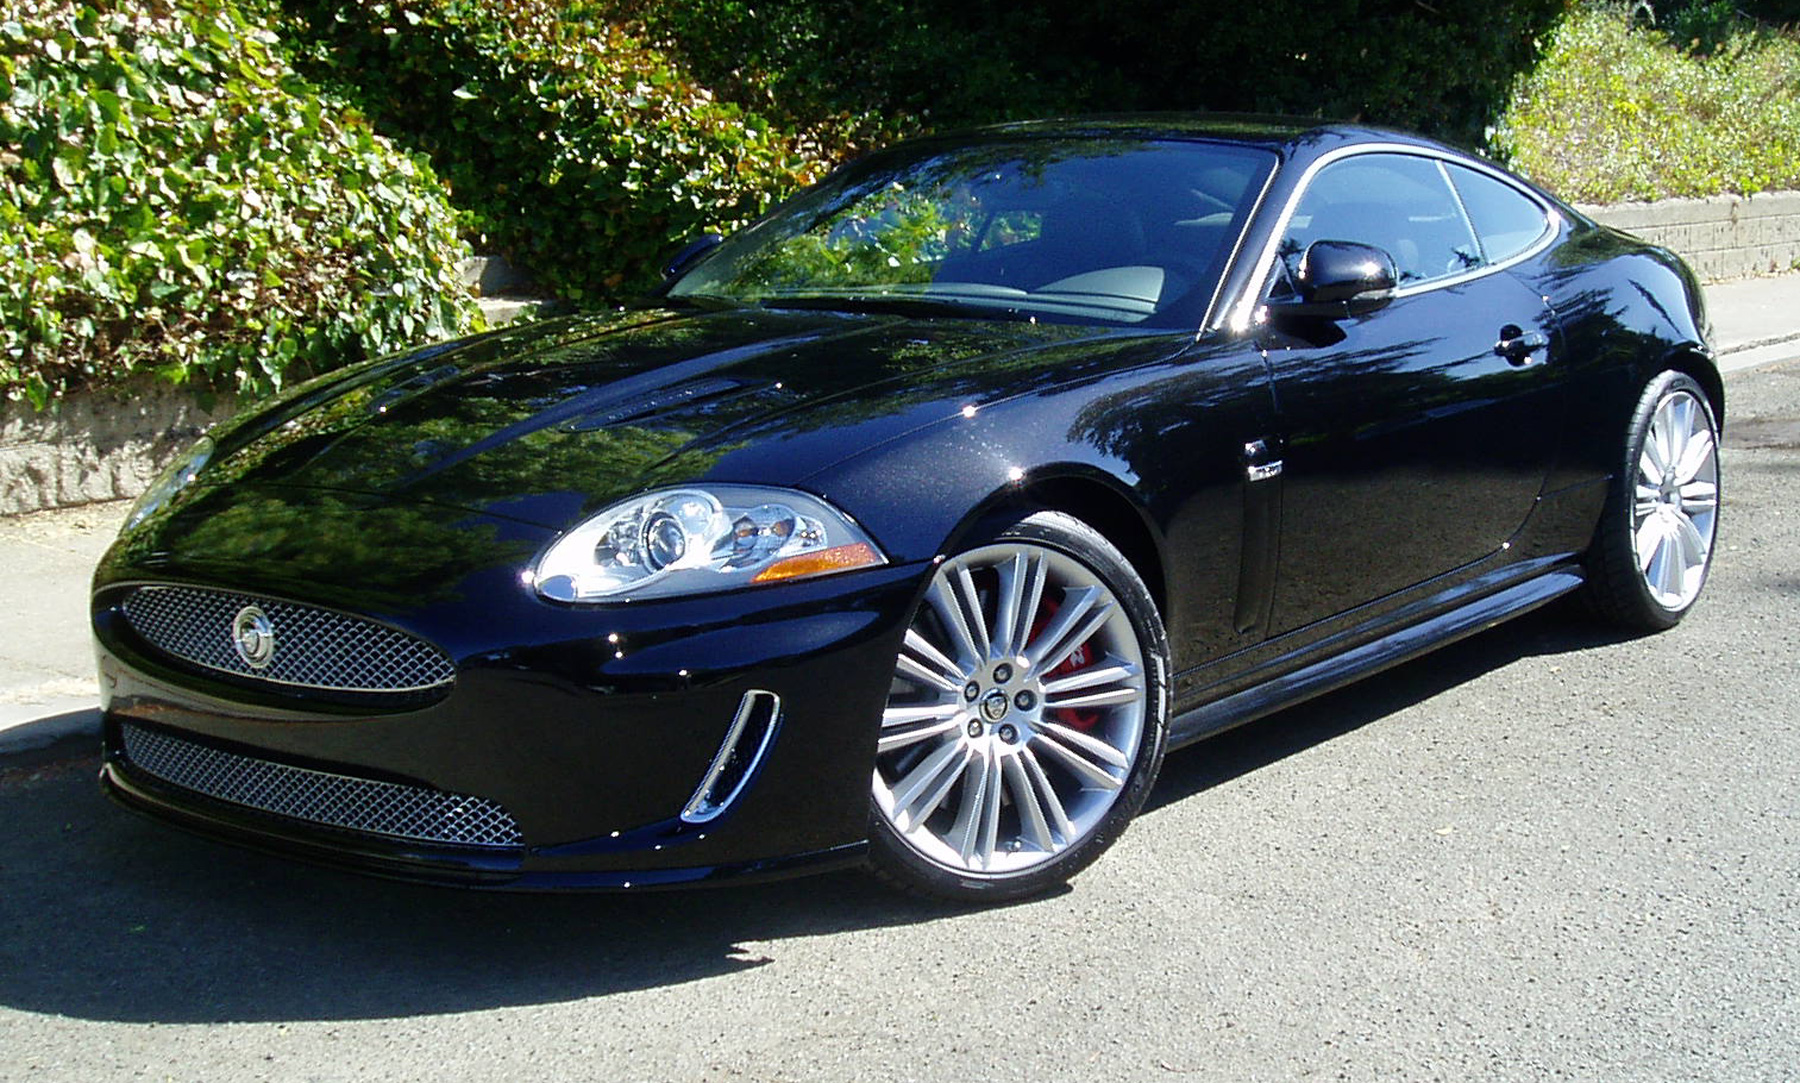 The XKR Coupe Is Beautiful And Stunningly Elegant In Its Design Form U2013  Perhaps More So Than Its Convertible Counterpart, But I Still Prefer  Open Air ...